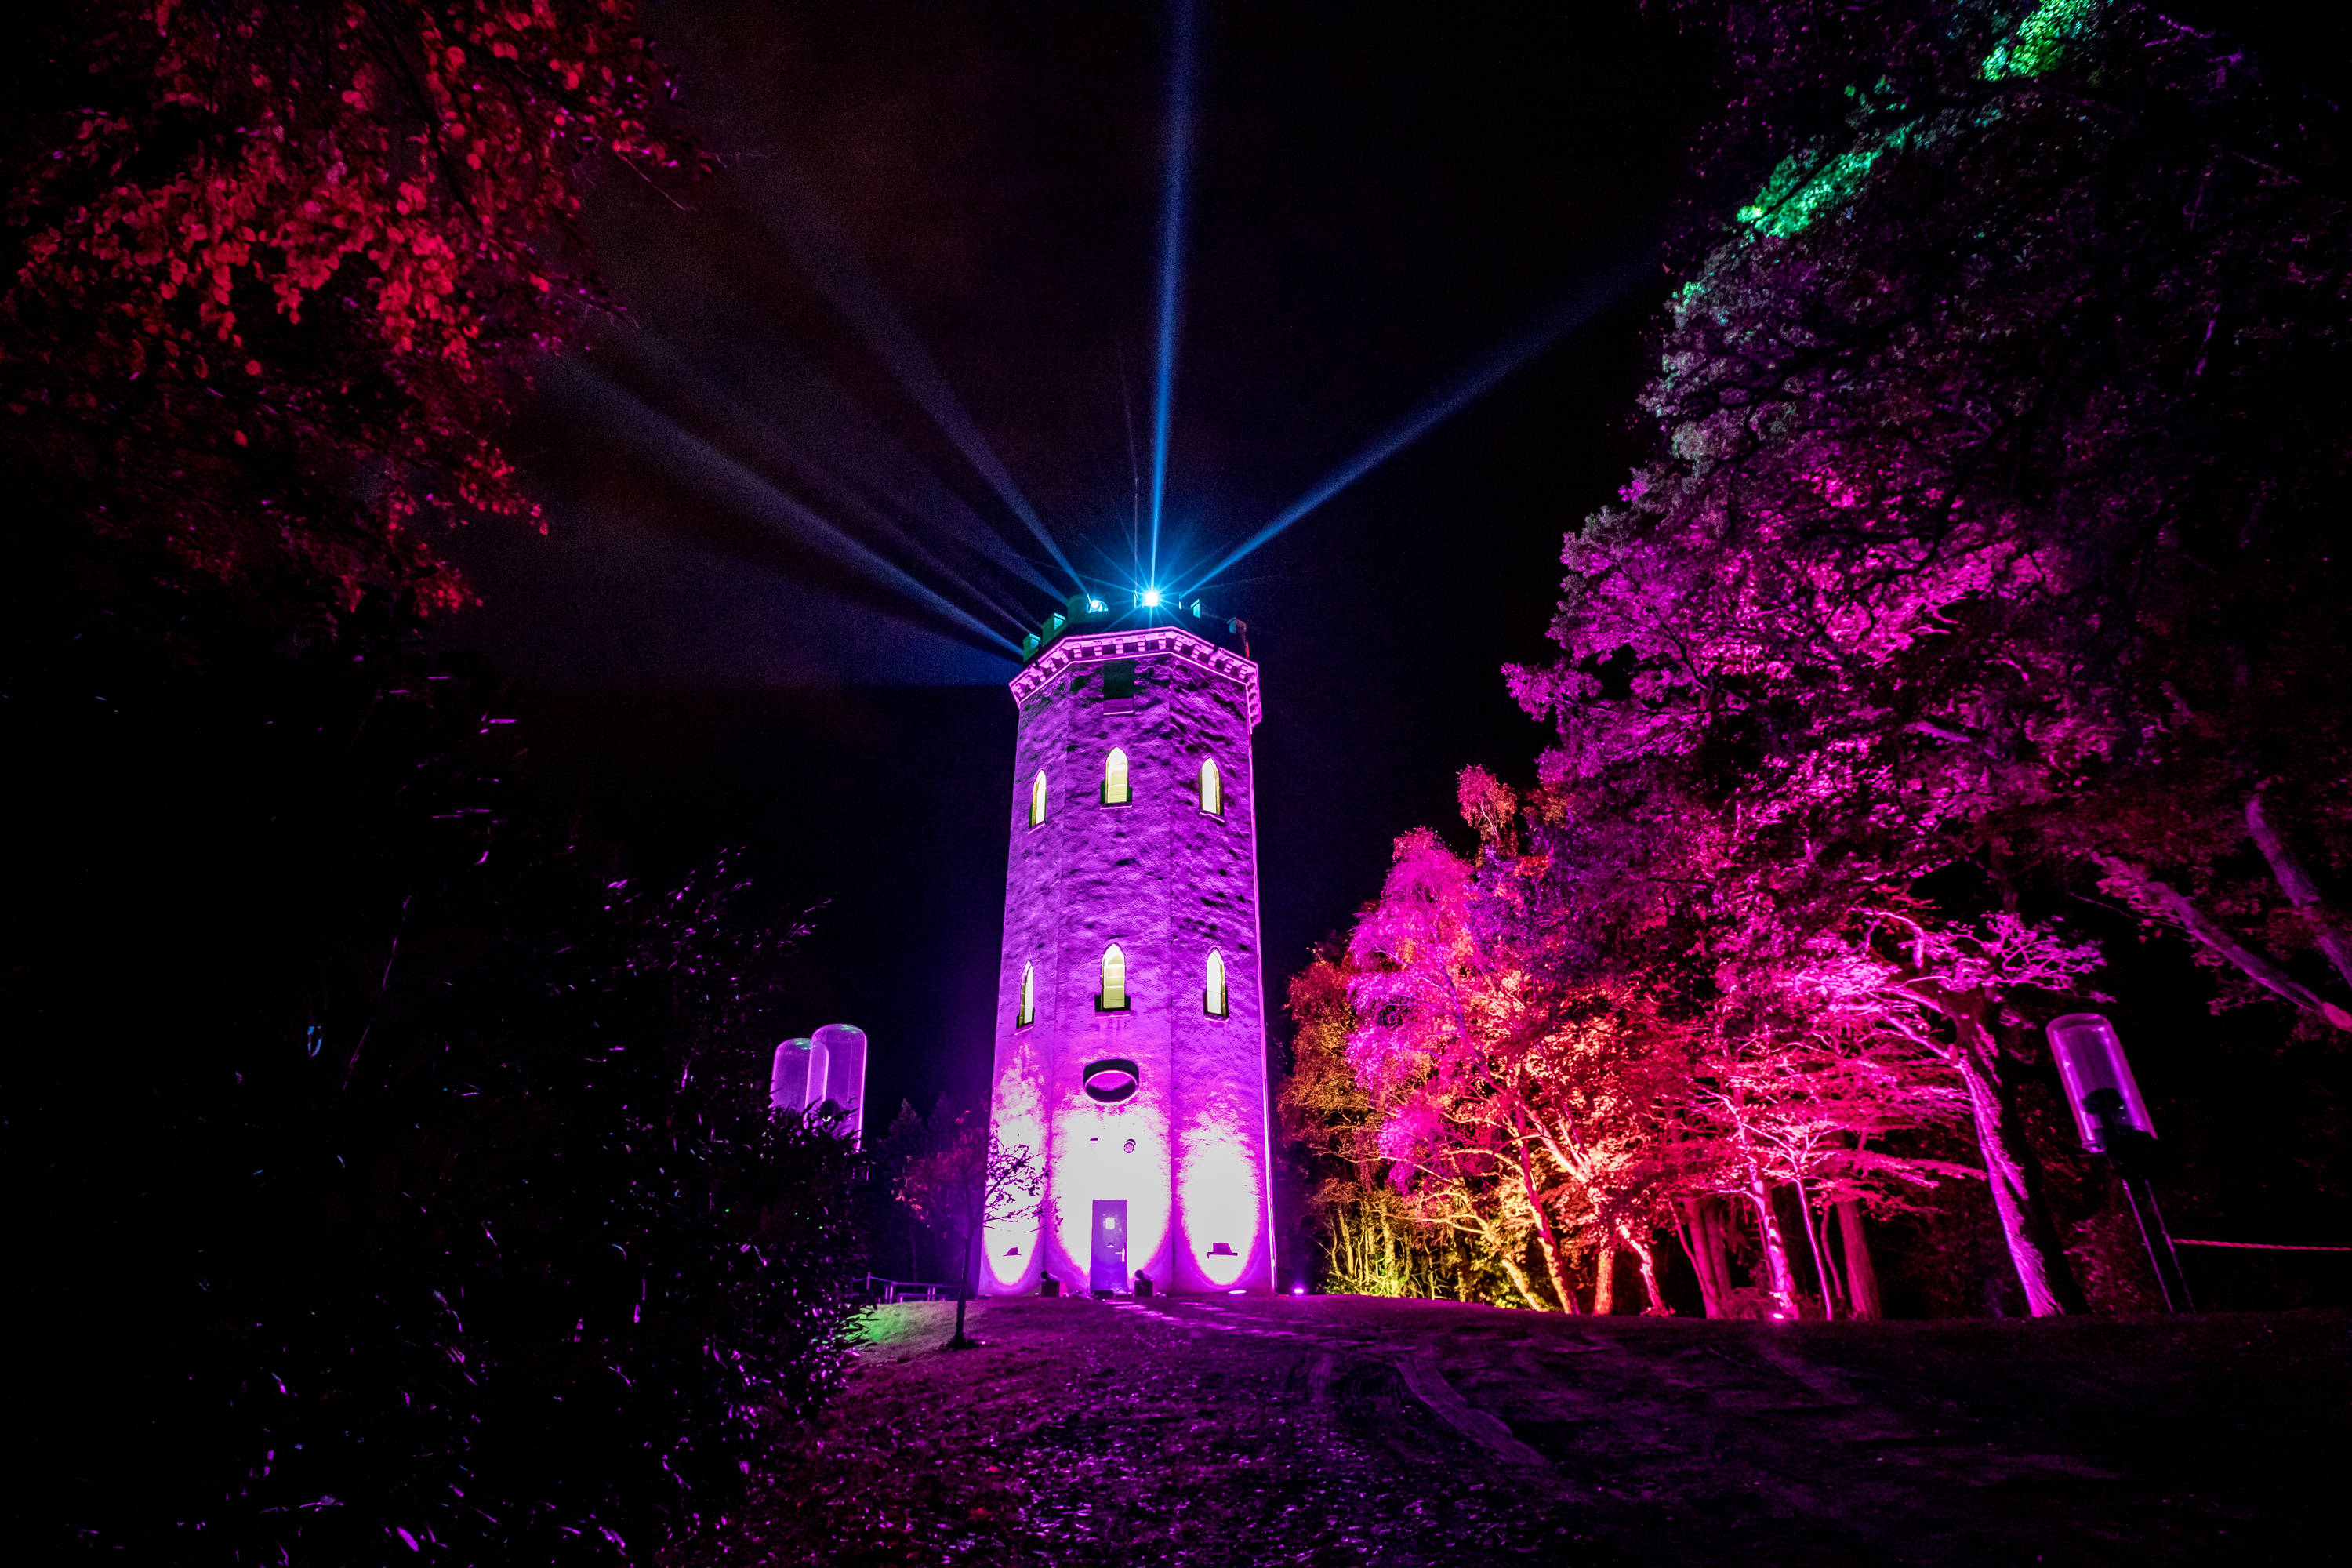 The centre-piece of Colours of Cluny is a lights show at Nelson's Tower.